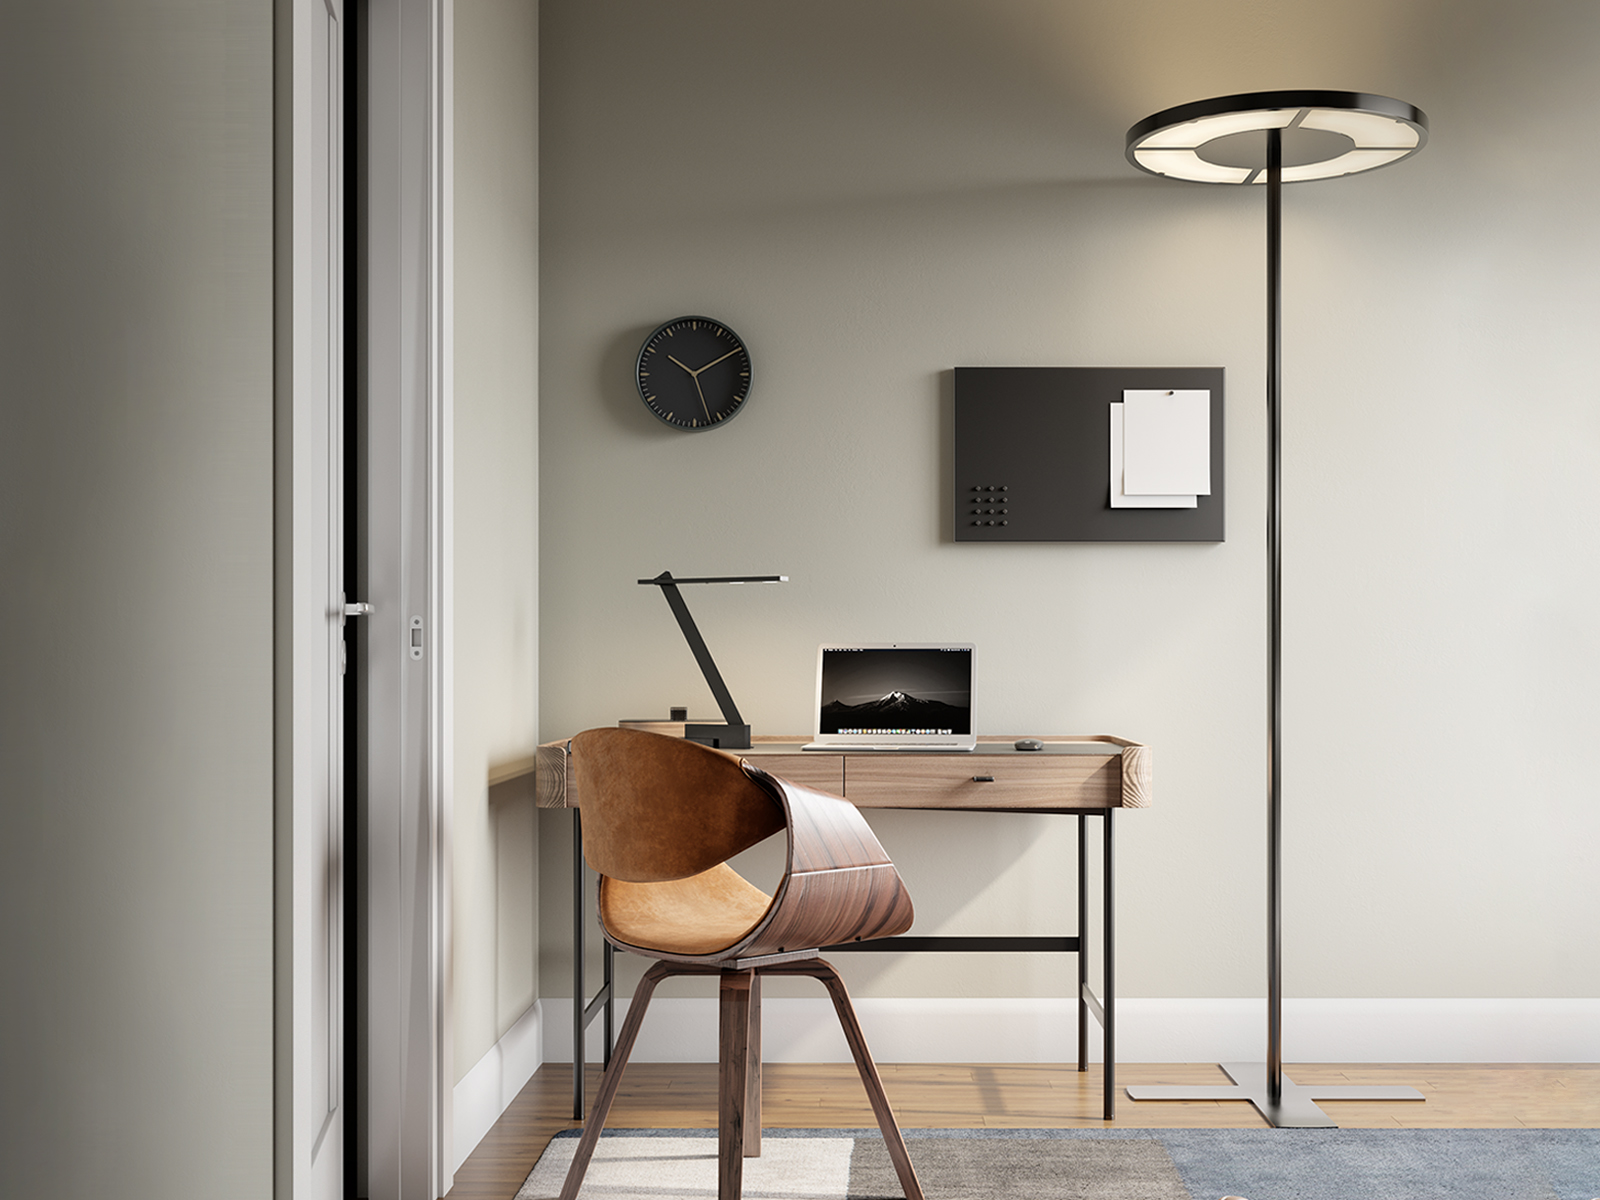 ROTONDA floor lamp and NASTRINO PICO table lamp in a bright home office.